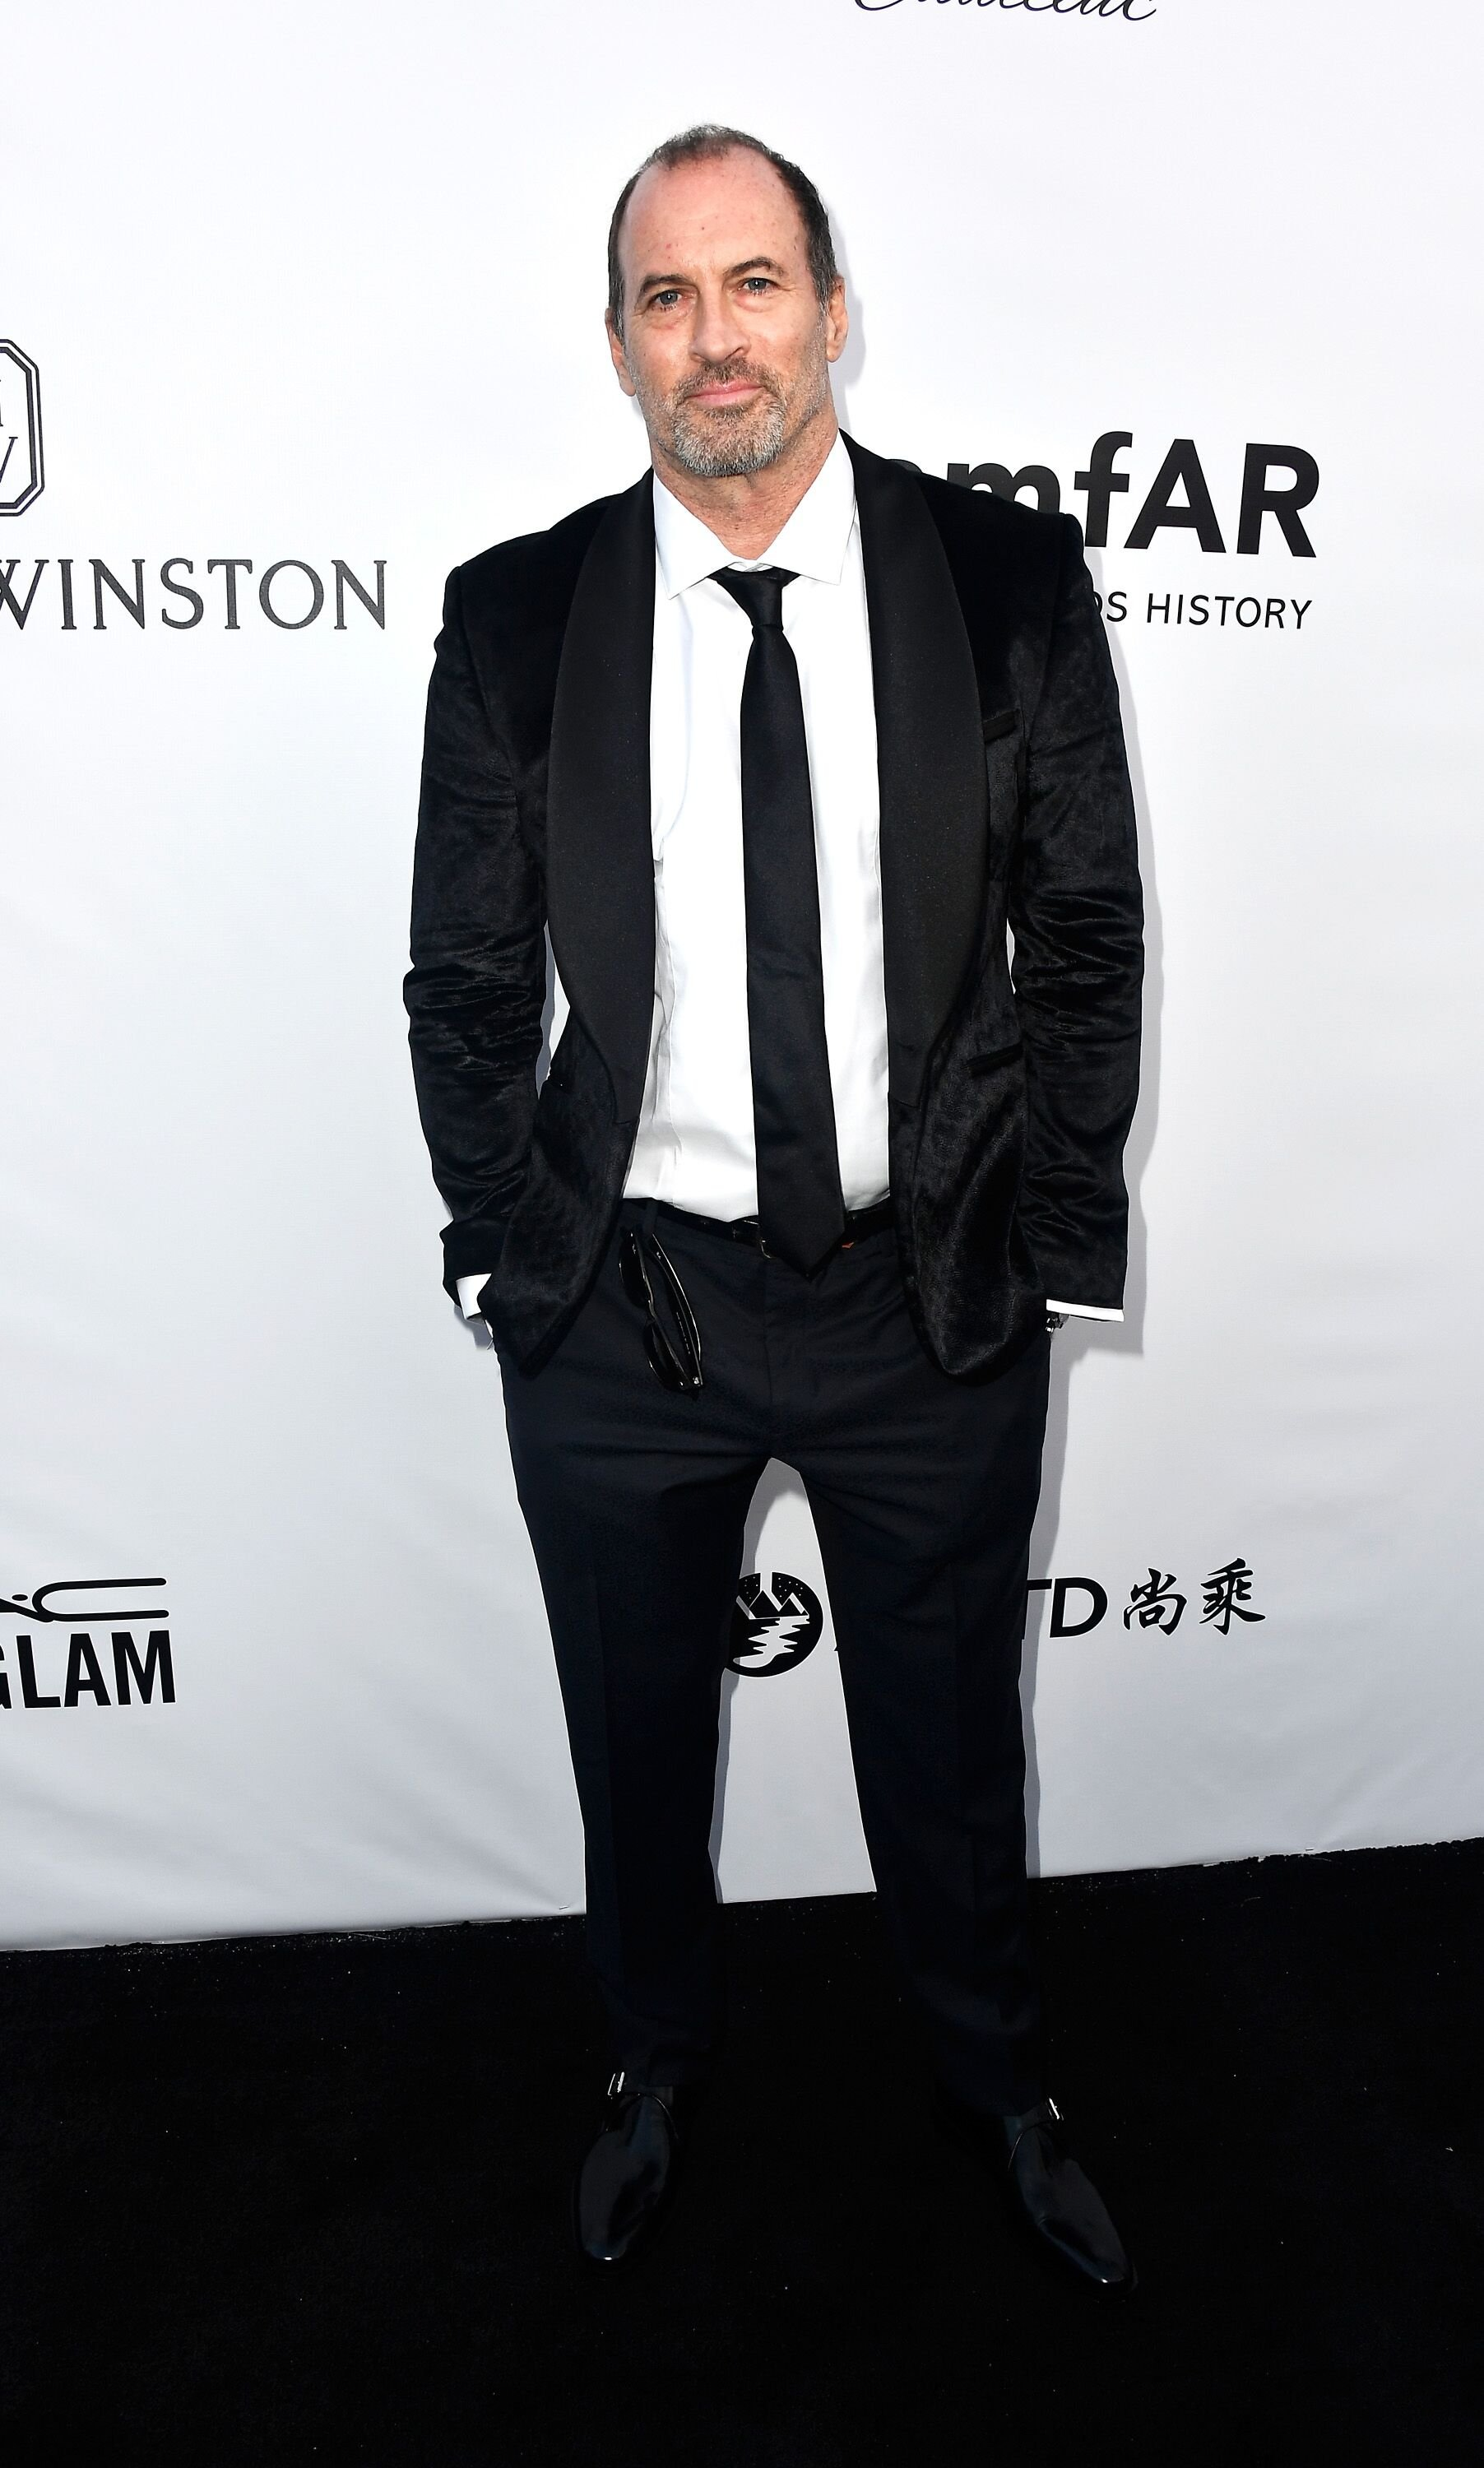 Scott Patterson at the amfAR Gala in Los Angeles on October 13, 2017. | Source: Getty Images